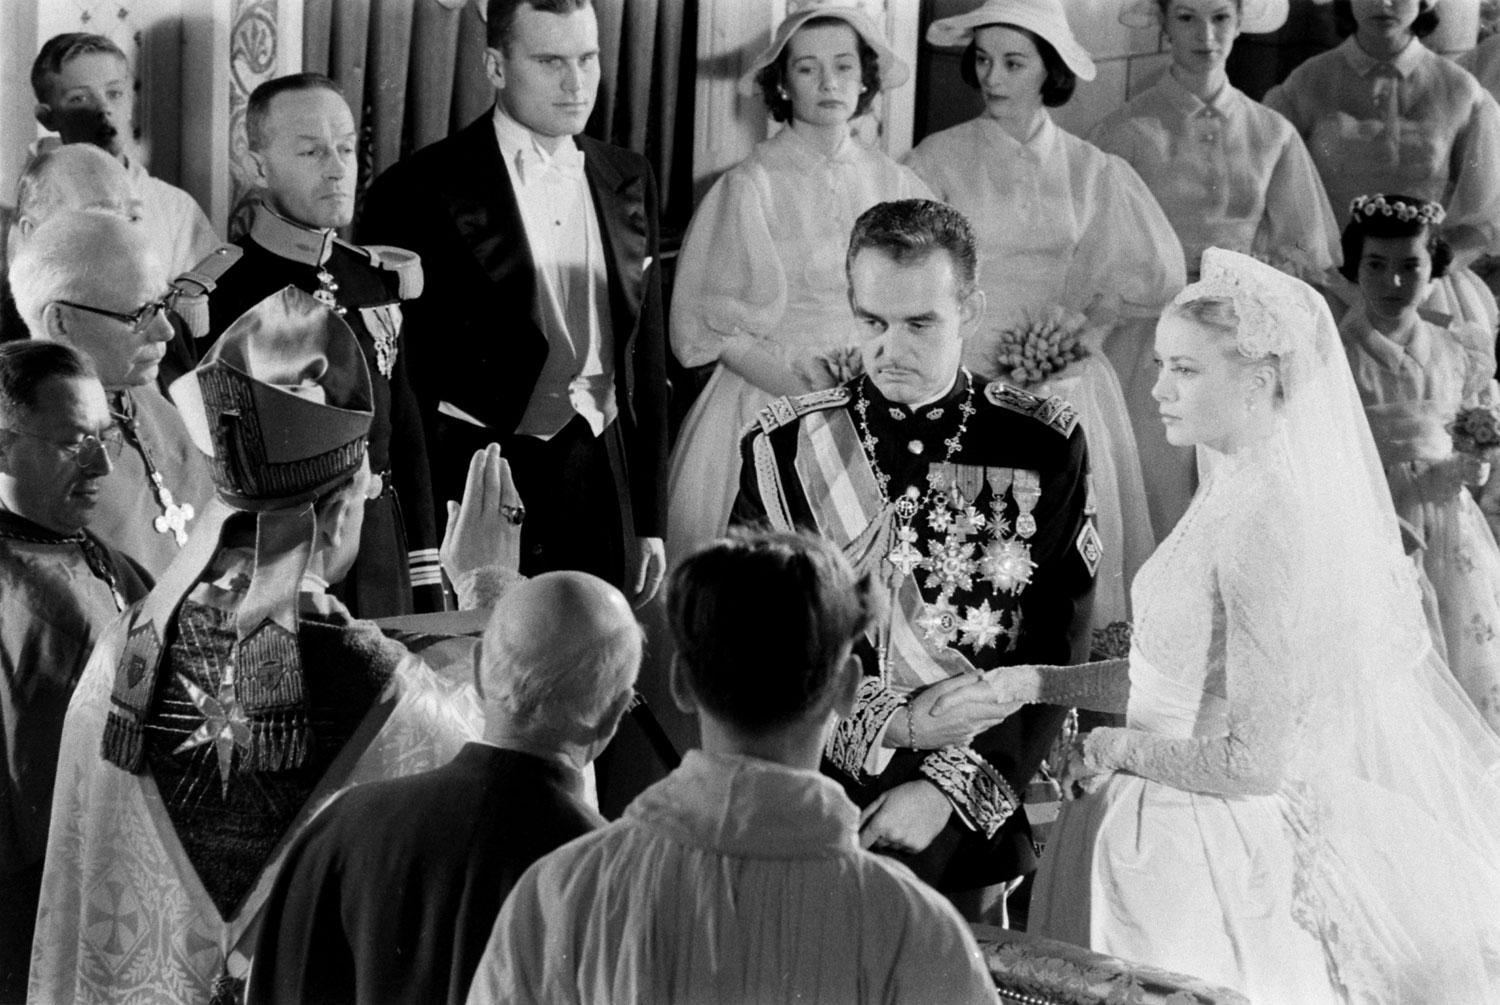 Grace Kelly and Prince Rainier join hands as the Bishop of Monaco, Mgr. Gilles Barthe, administers the nuptial benediction at Saint Nicholas Cathedral, April 1956.